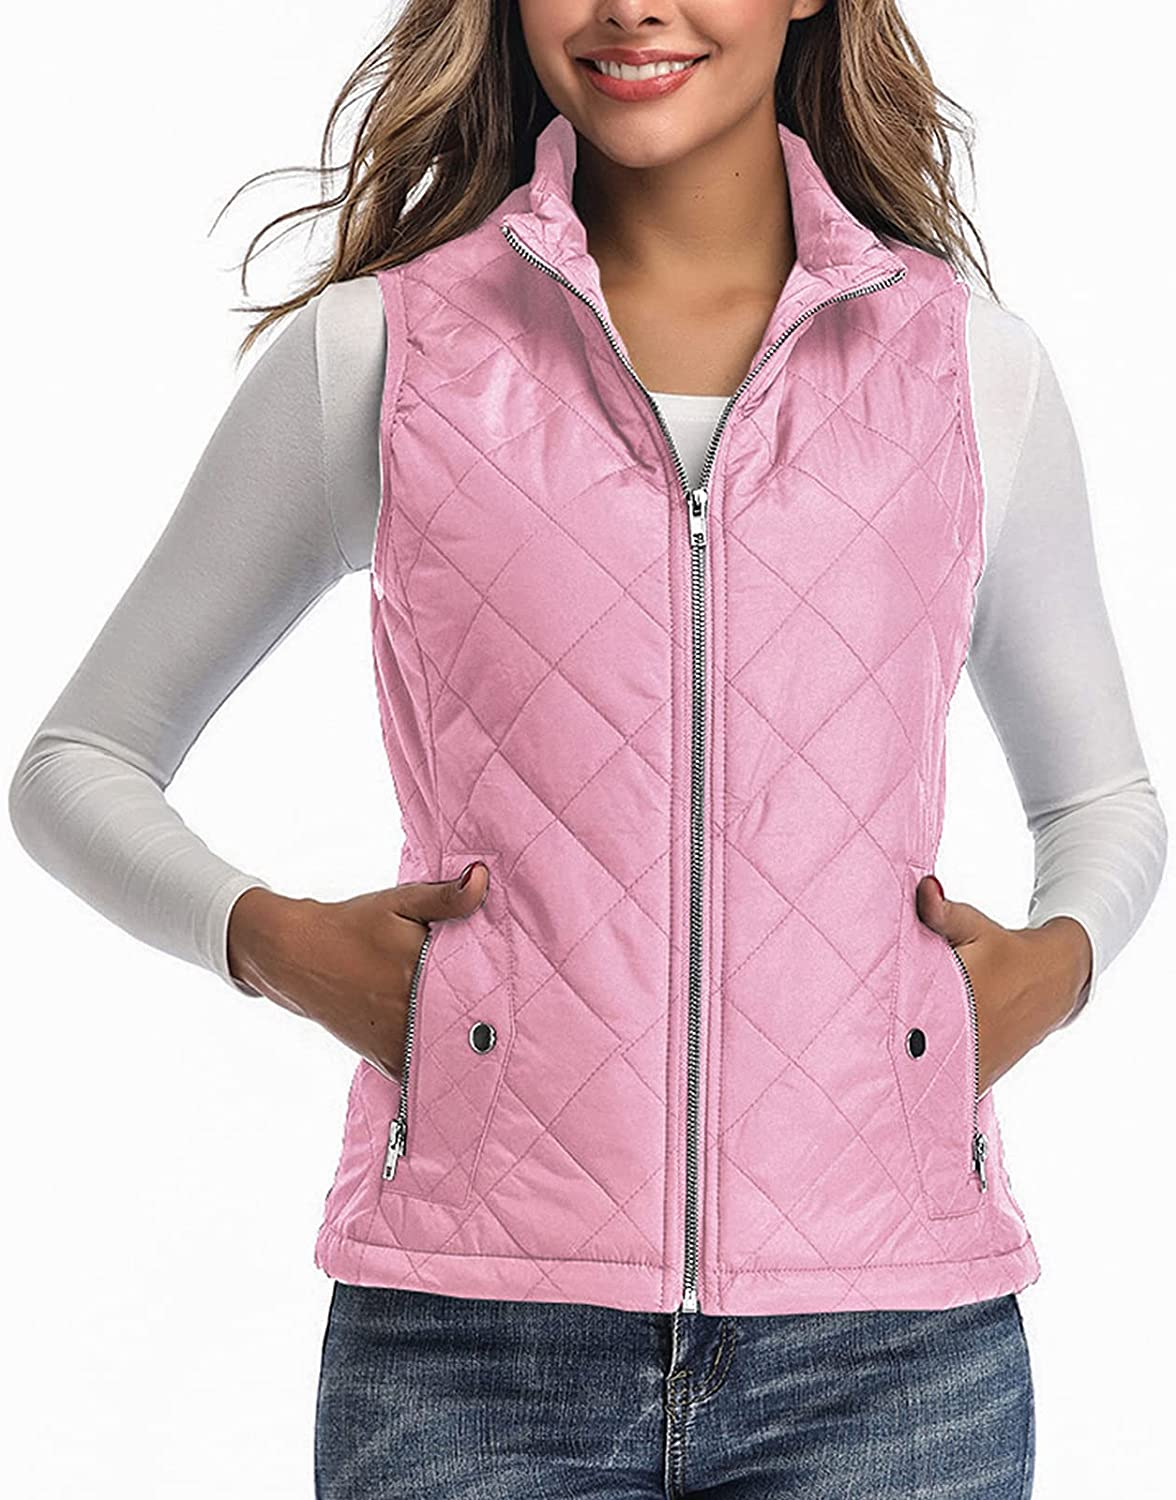 High material Women's Vest - Stand Collar for Quilted Zip Wom Lightweight unisex